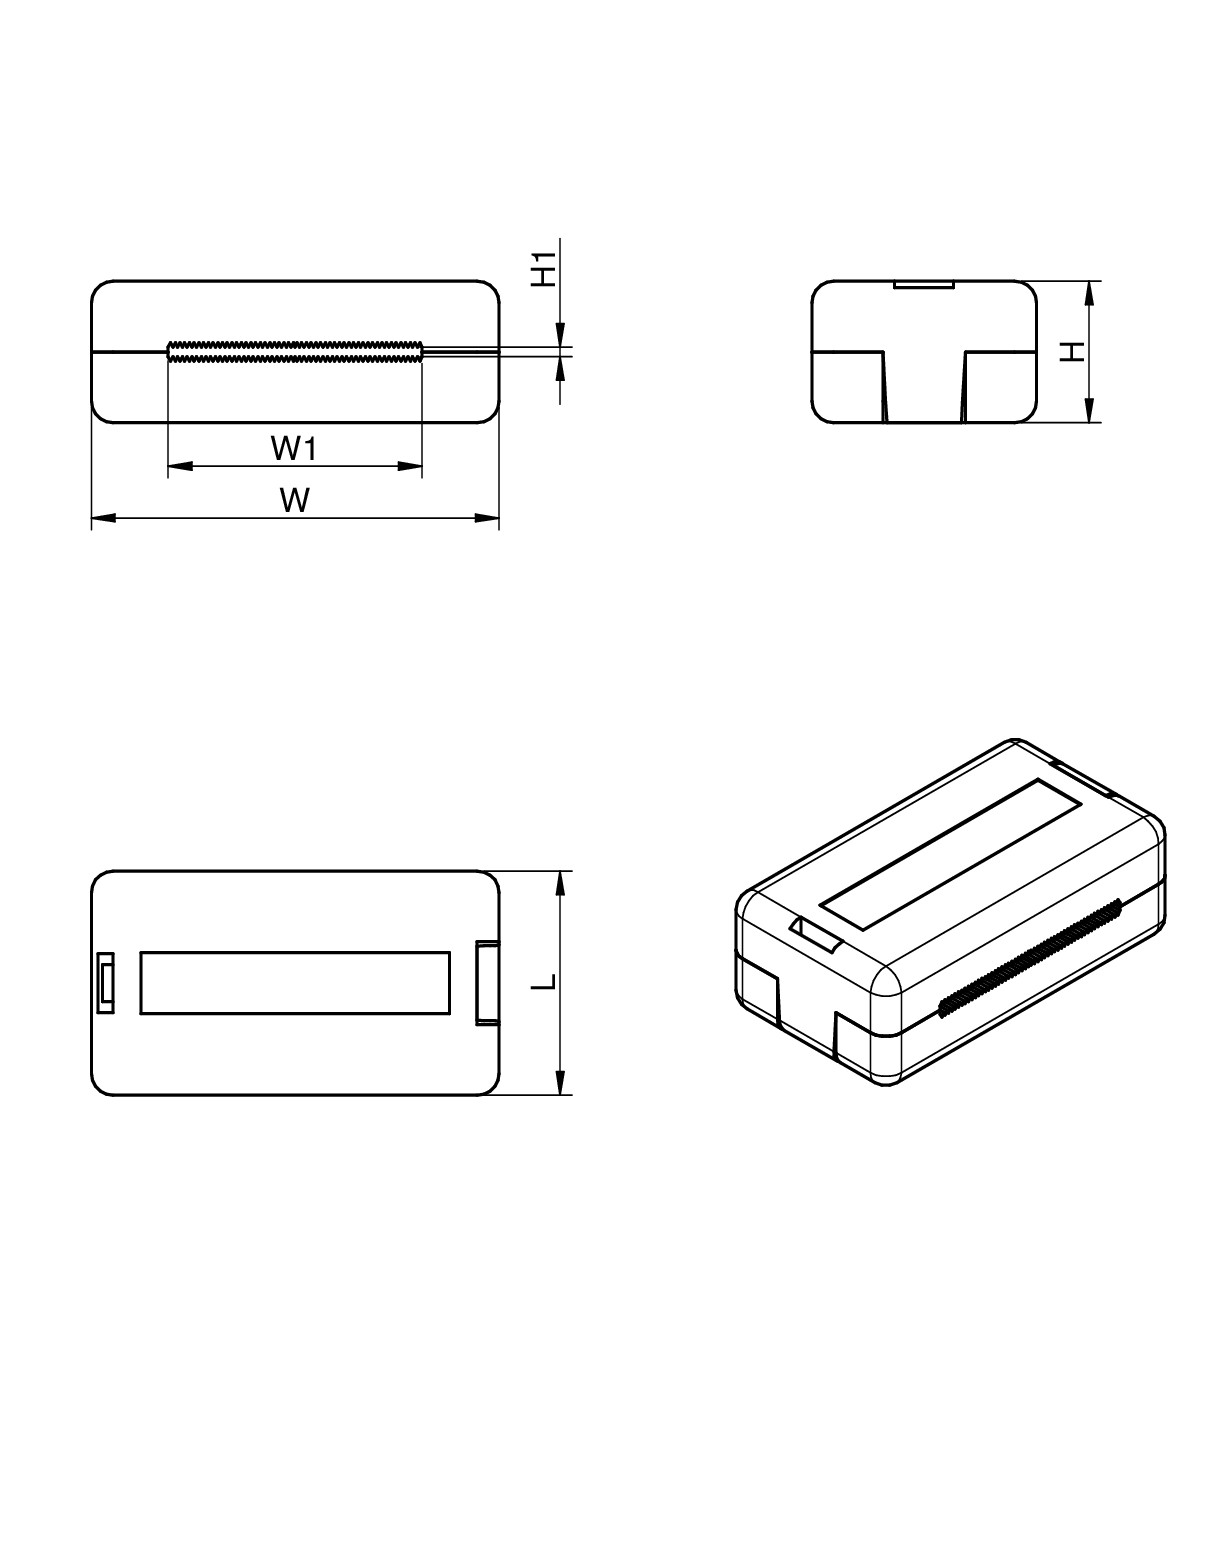 WE-FCAC Ferrite Core Assembly Components Dimensions